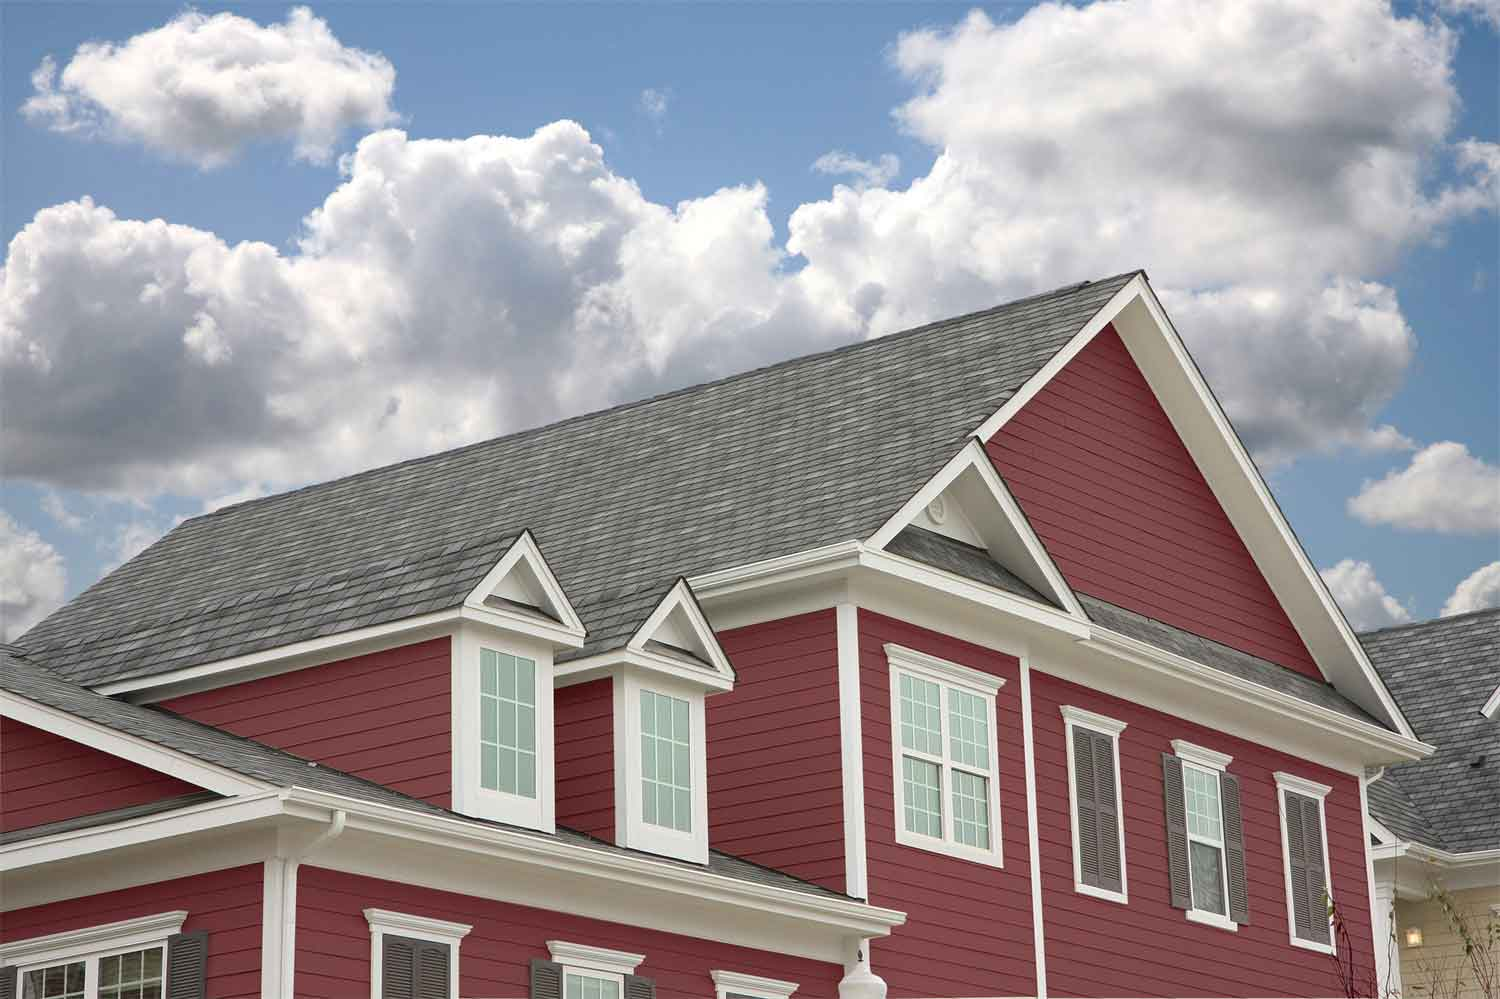 country-lane-red-james-hardie-siding-colors-denver-colorado